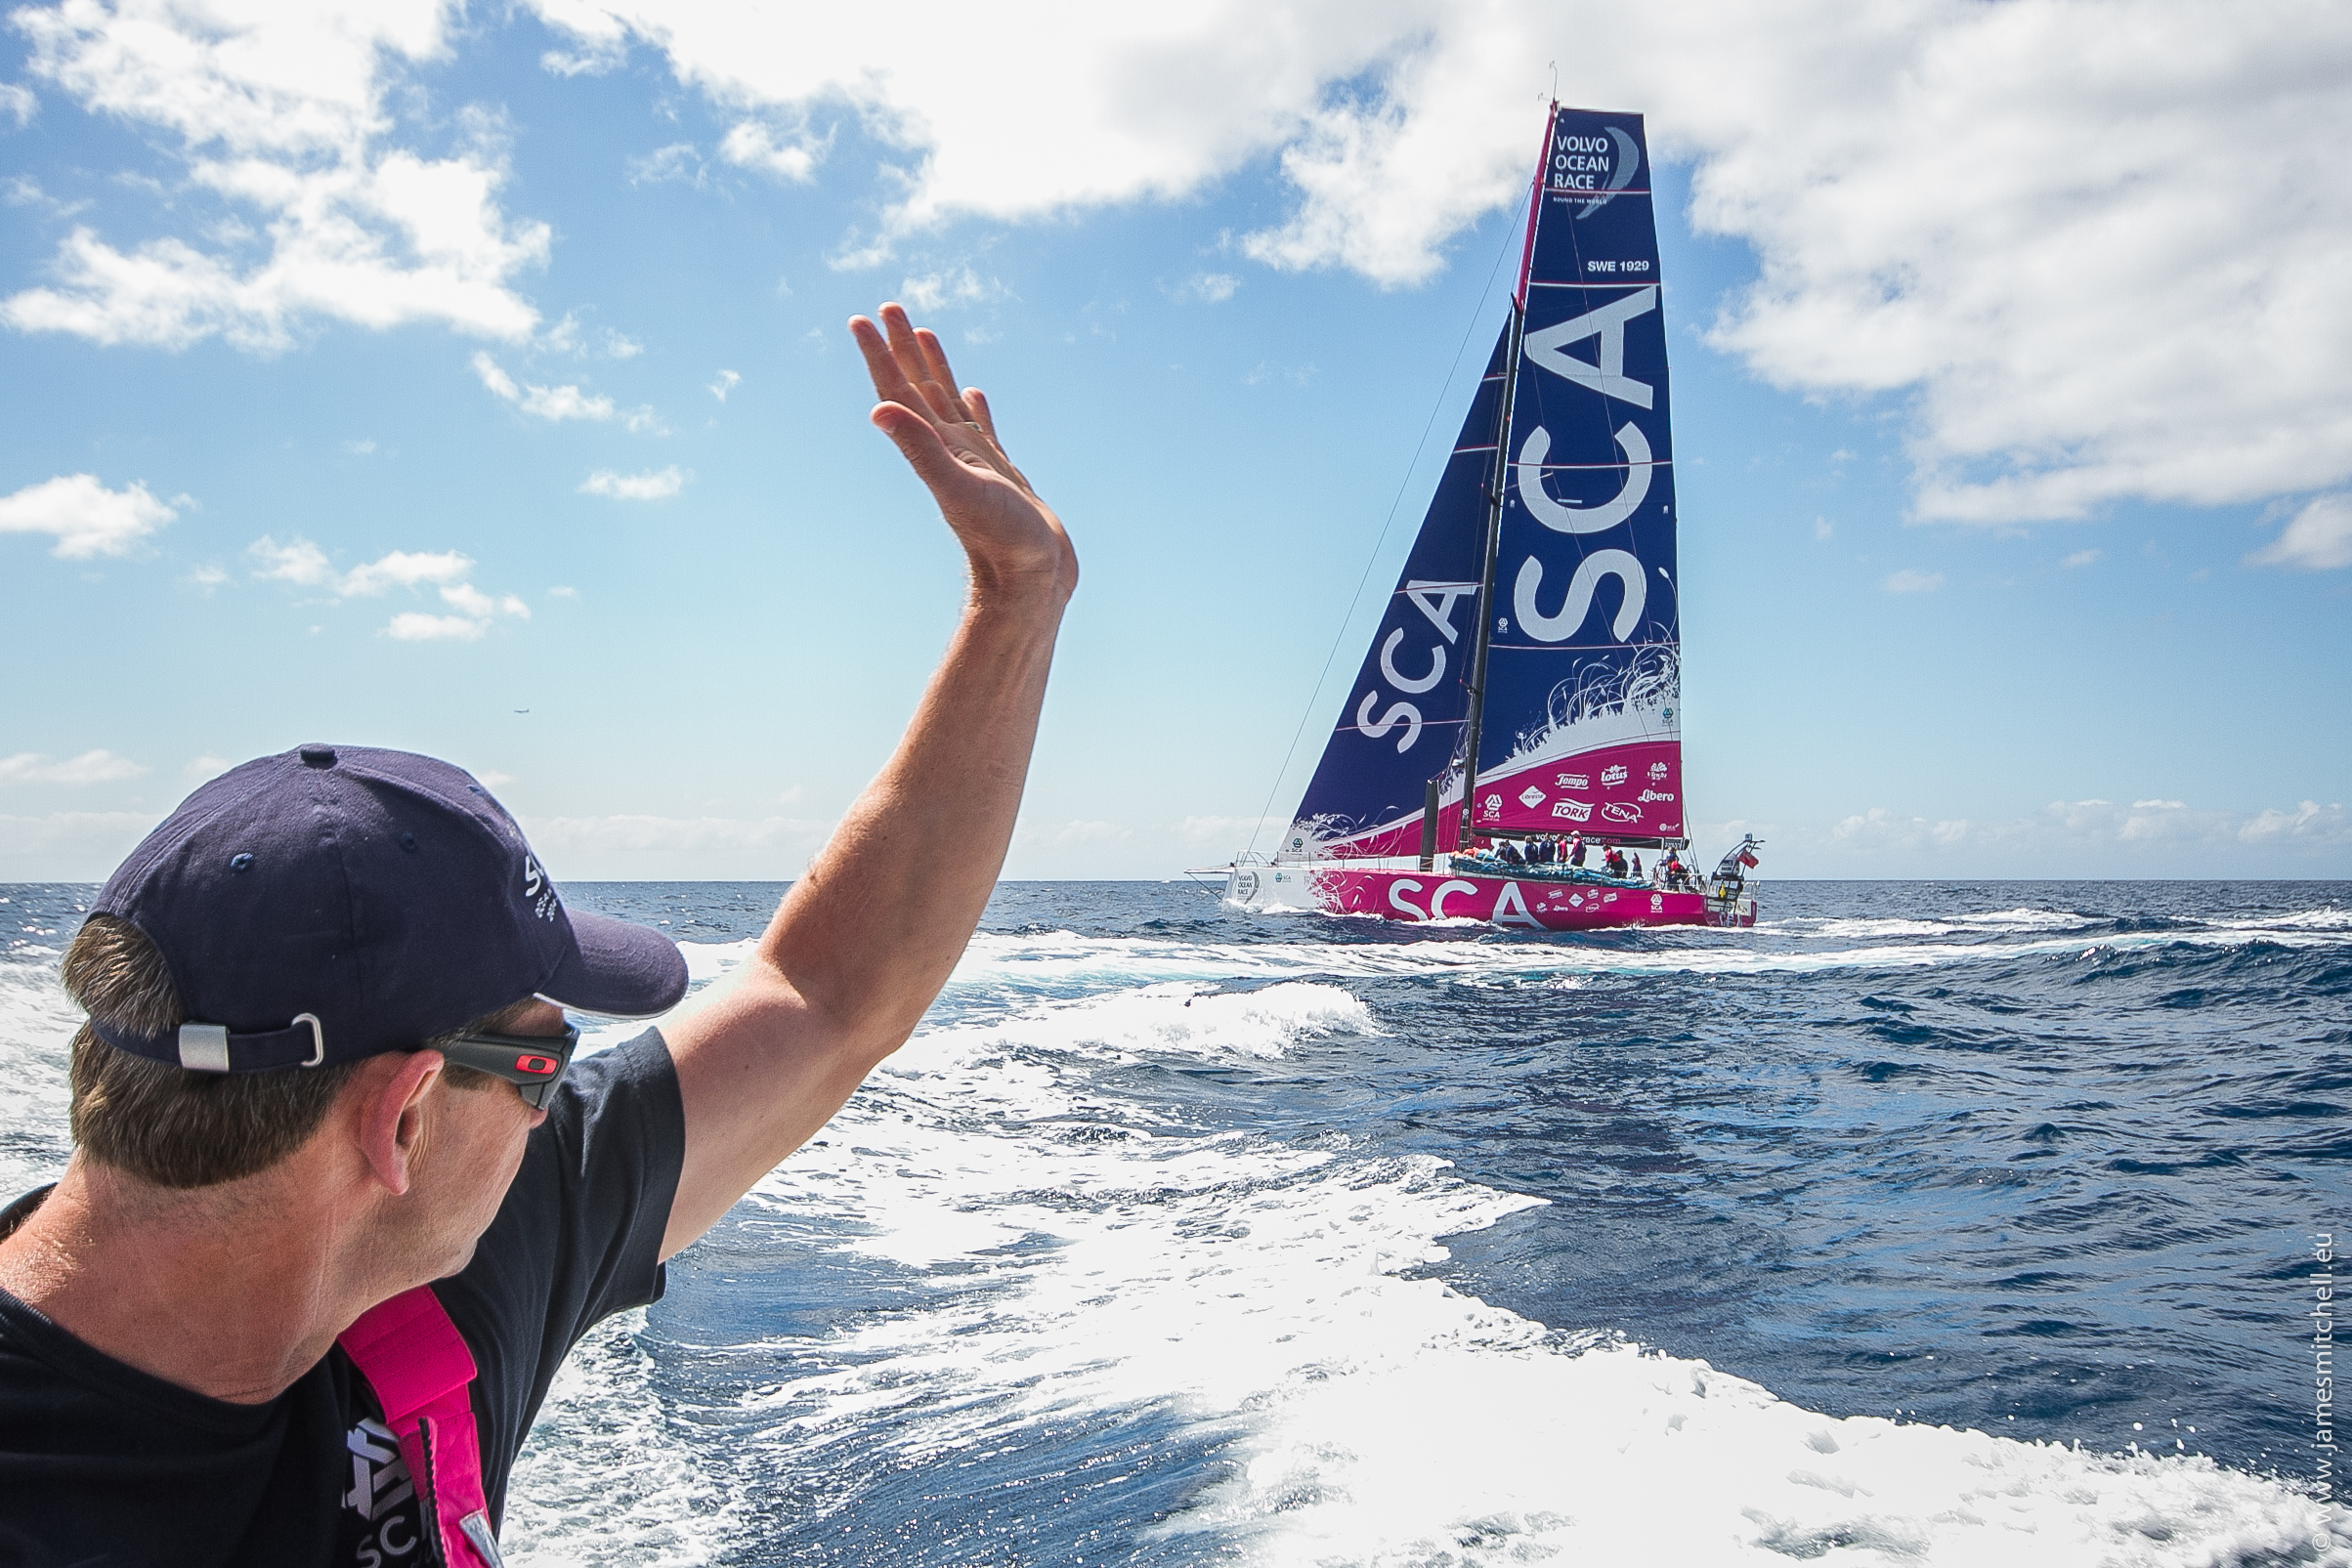 TeamSCA-©JamesMitchell